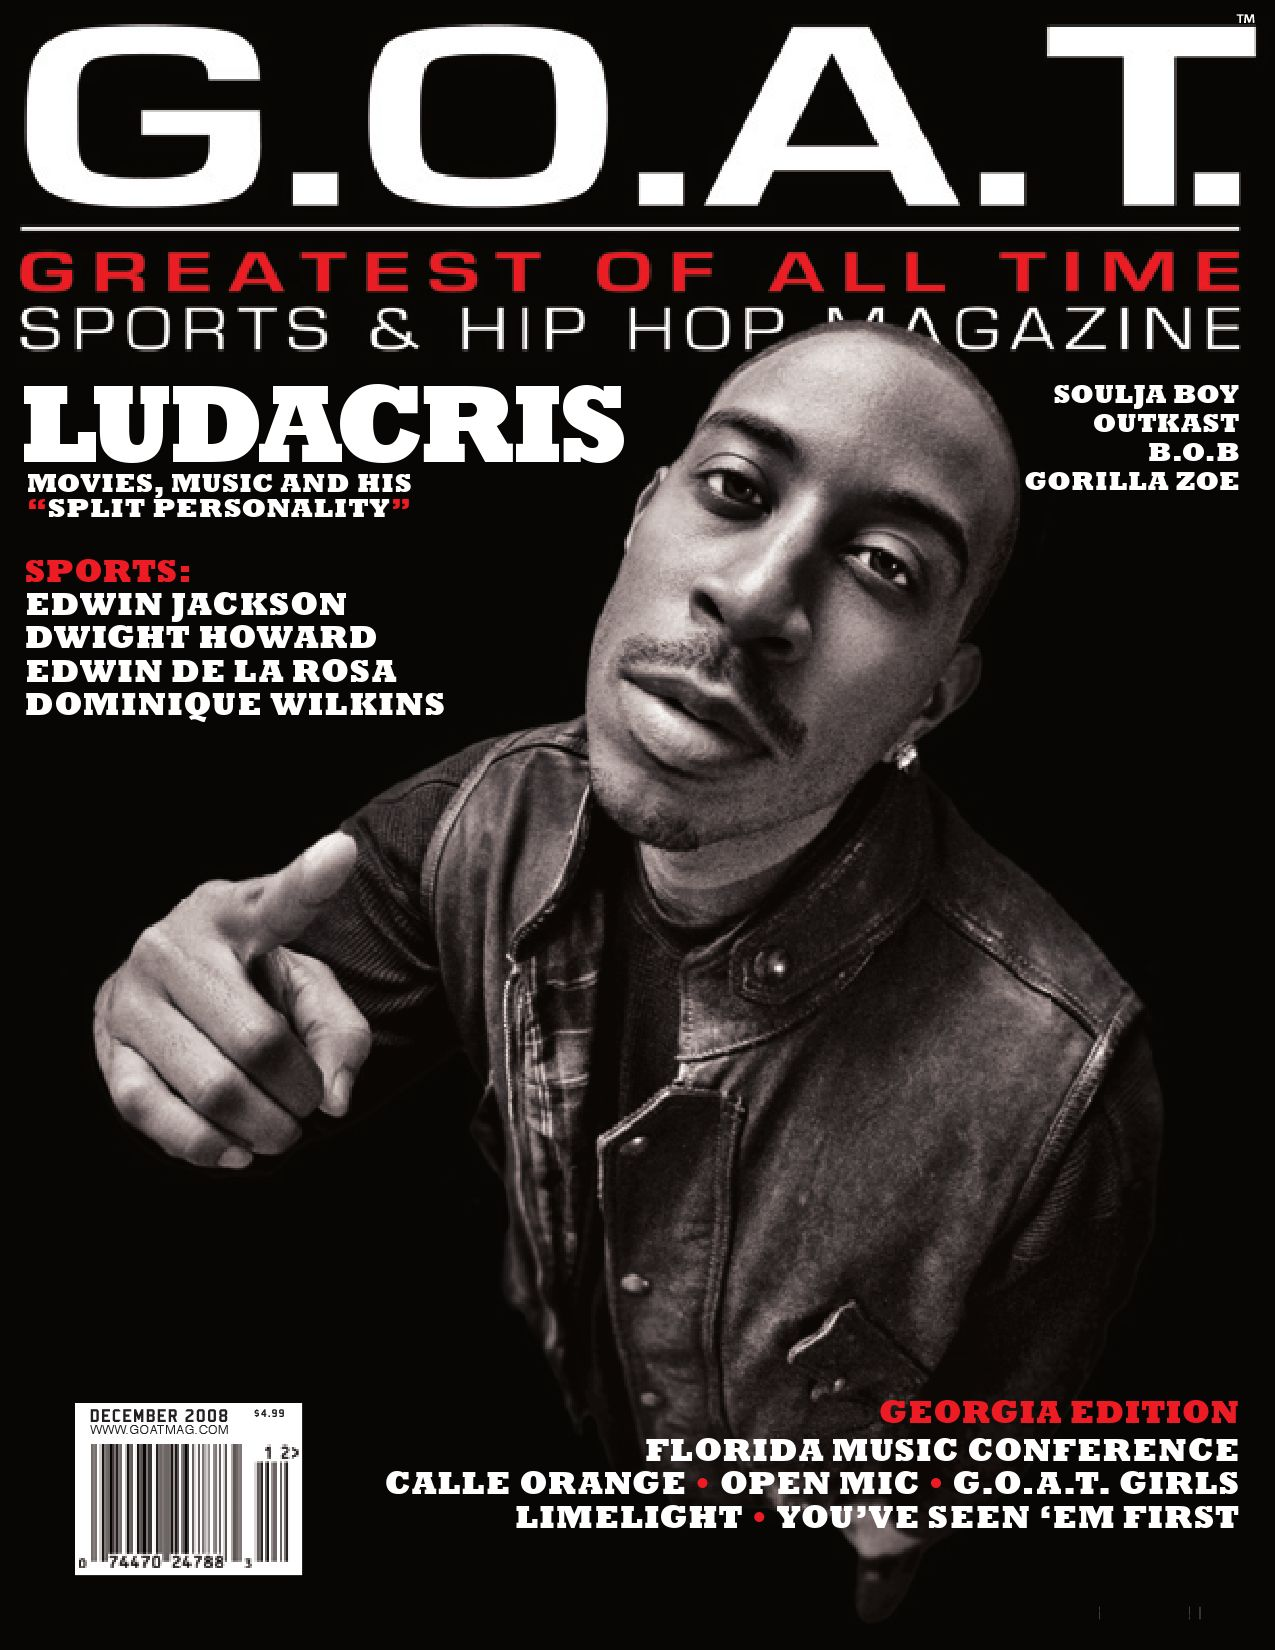 Issue # 2, Dec 2008 by G O A T  Magazine Greatest of all